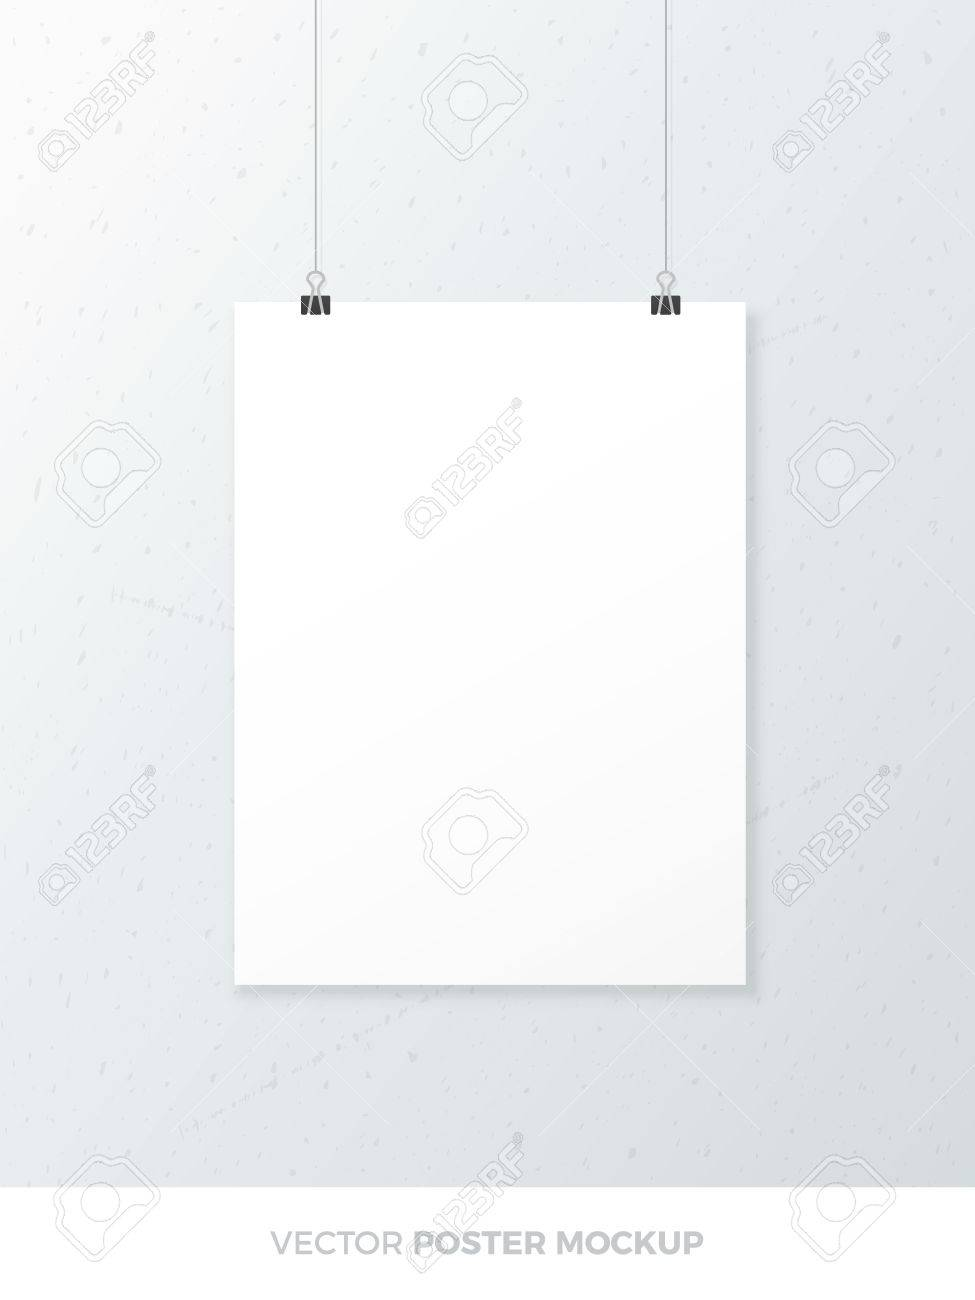 blank white poster mockup poster template royalty free cliparts